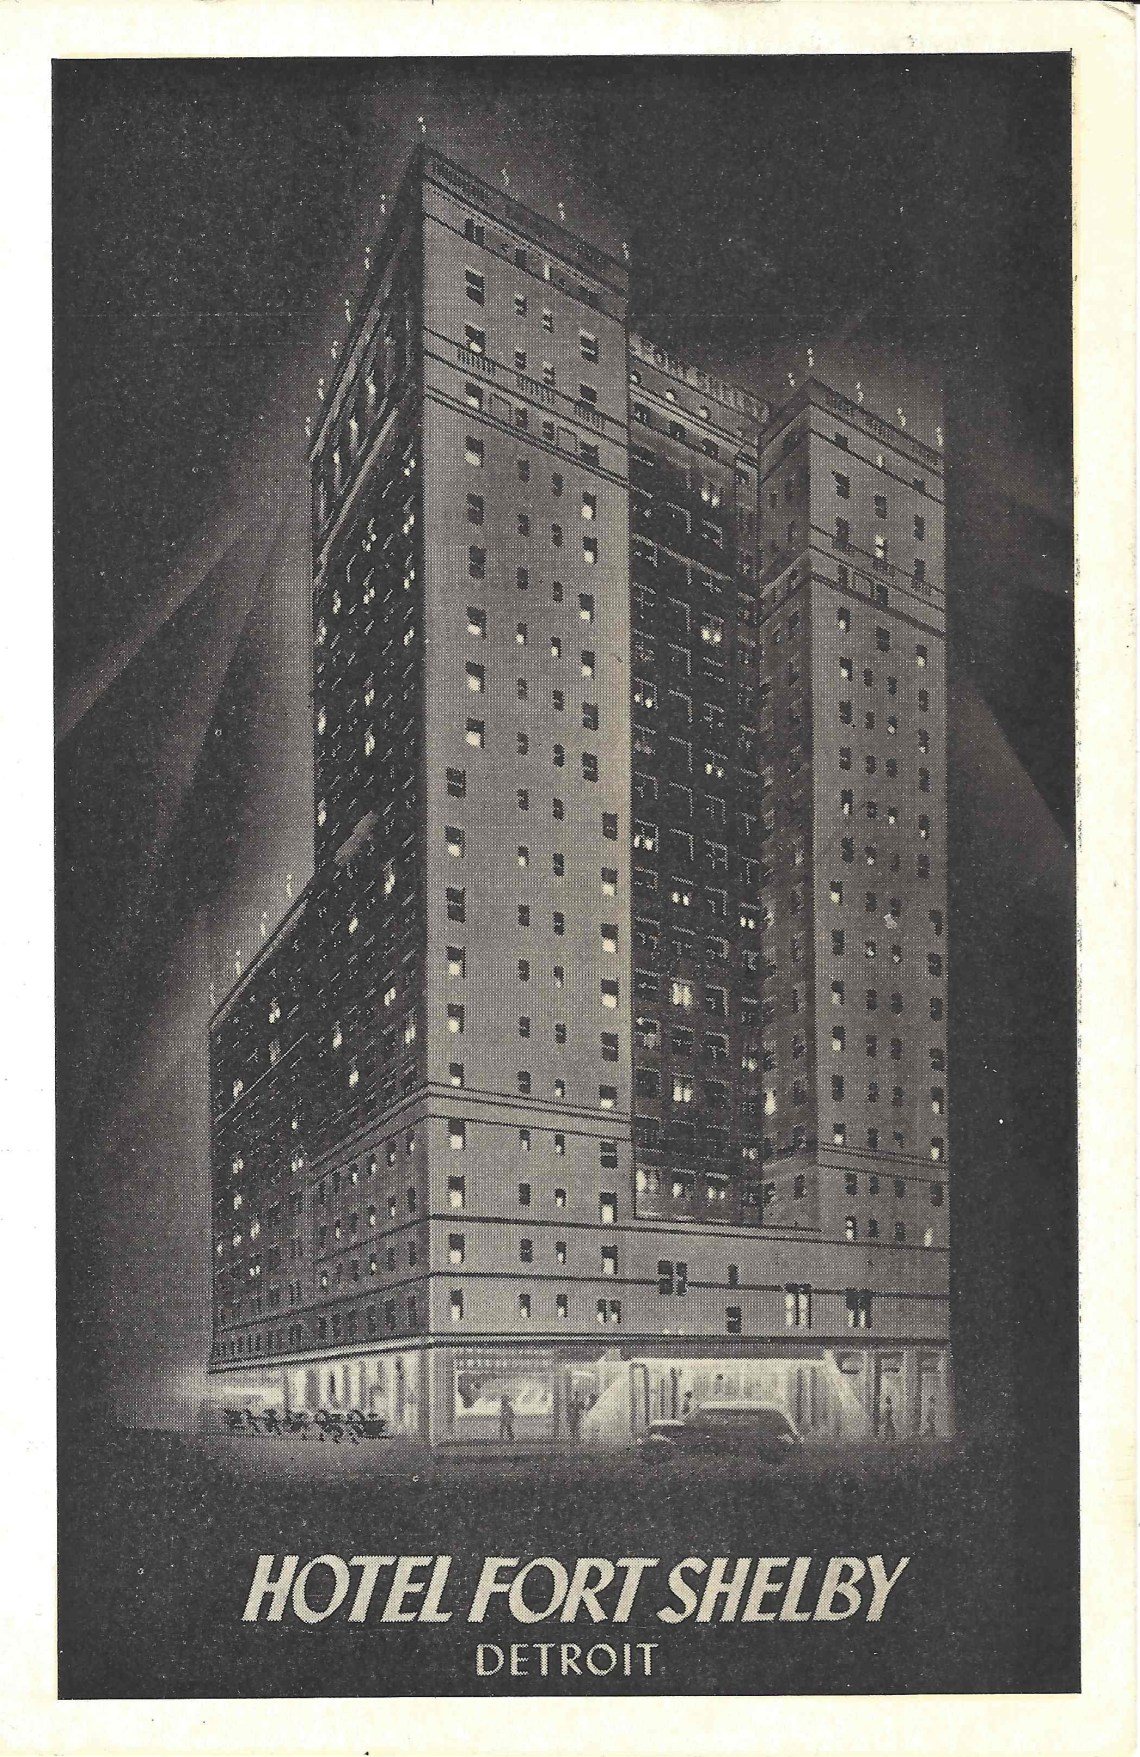 Hotel Fort Shelby